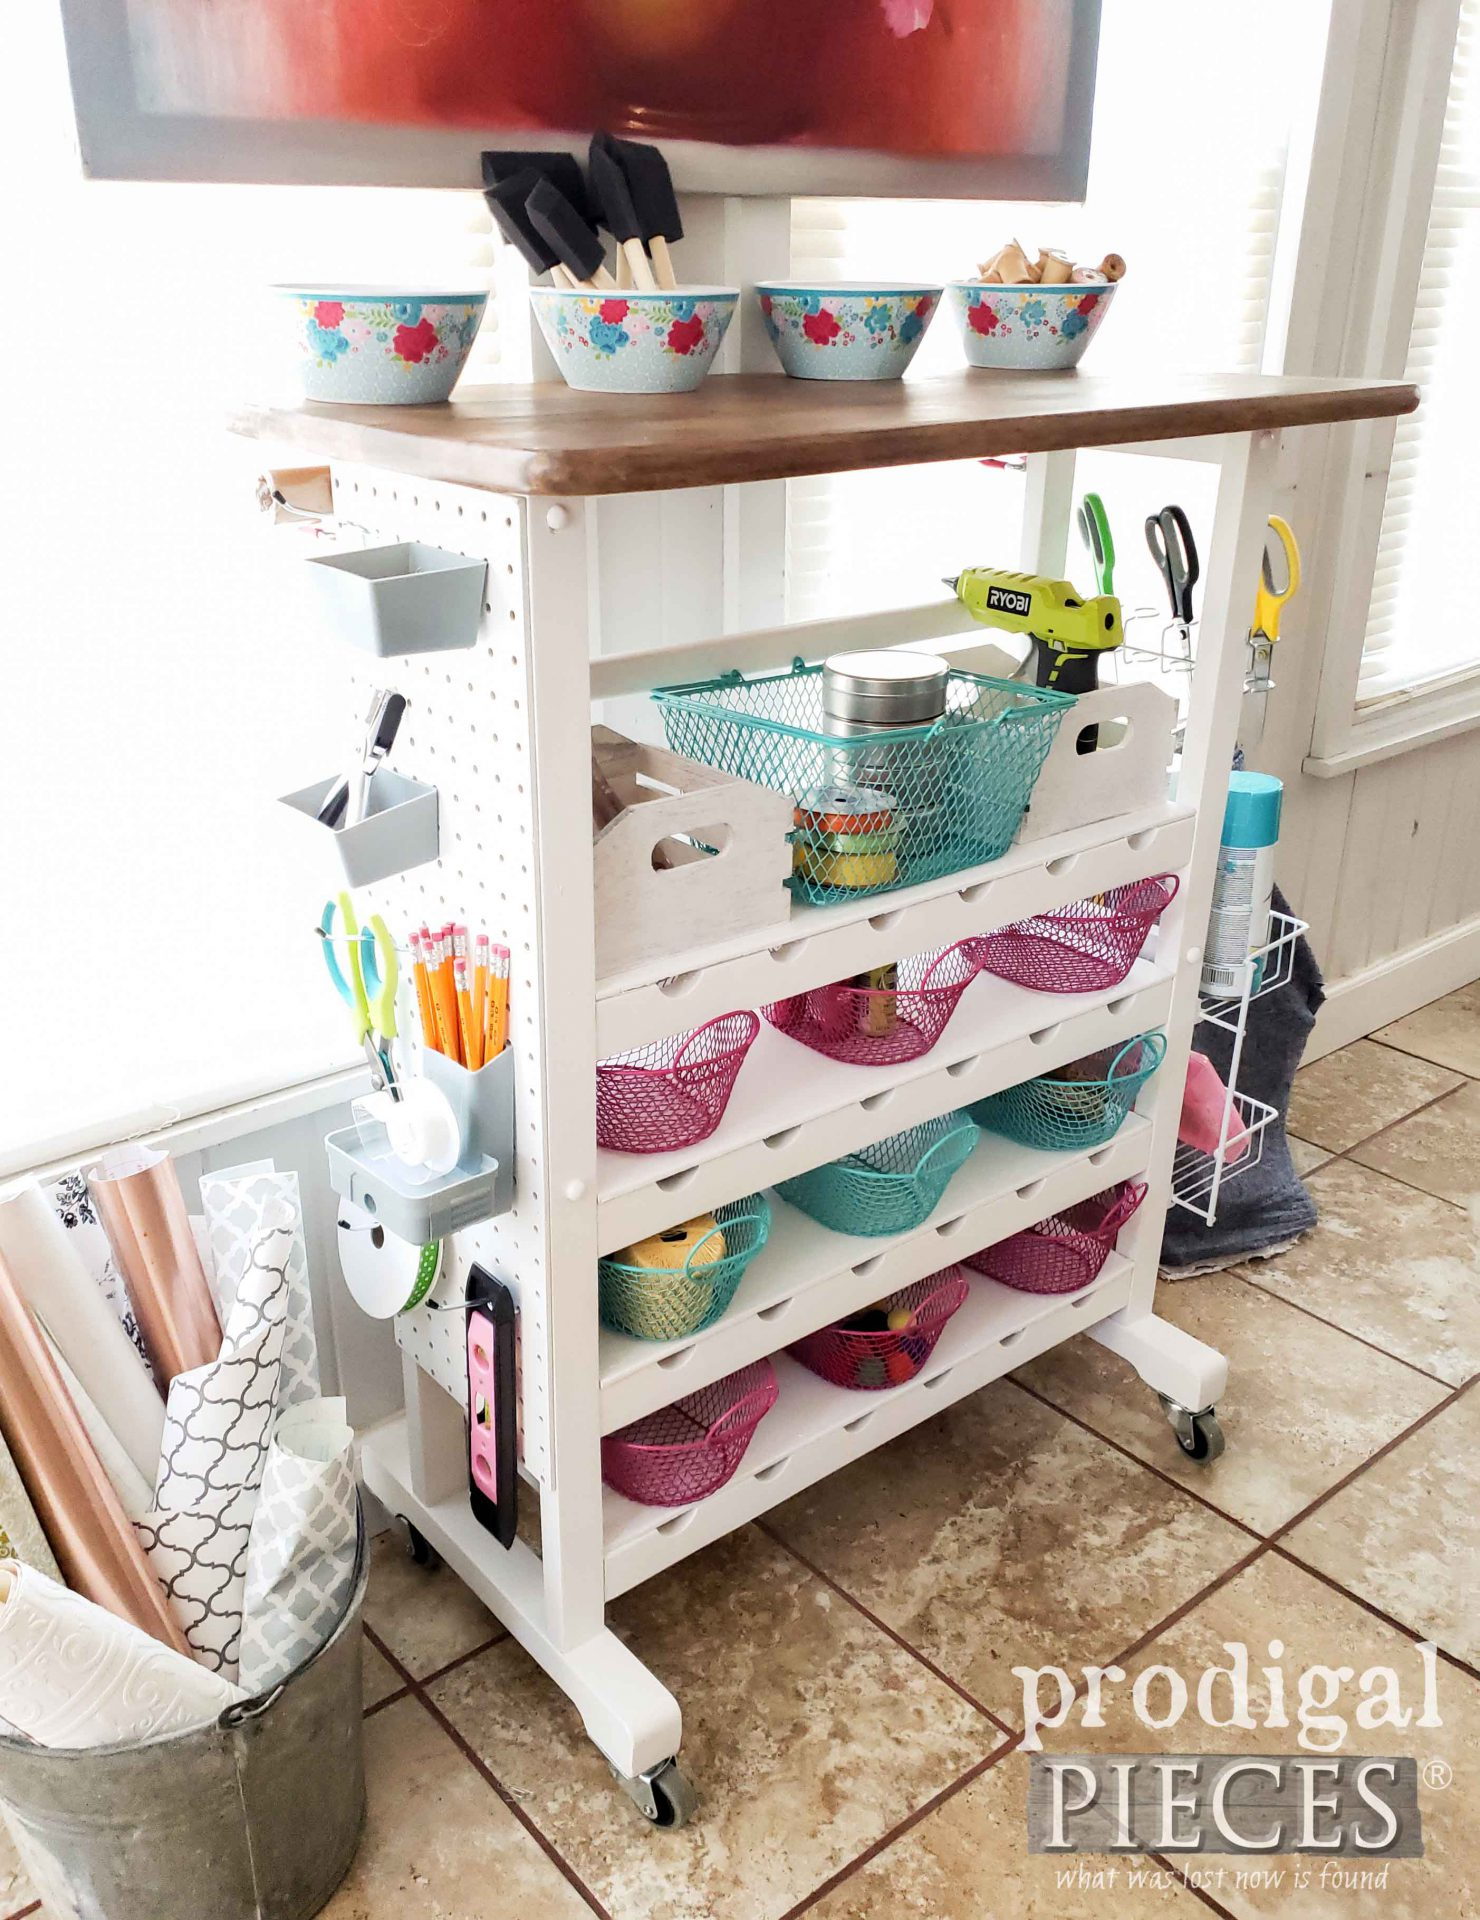 DIY Craft Cart from Repurposed Wine Rack by Larissa of Prodigal Pieces | prodigalpieces.com #prodigalpieces #diy #home #homedecor #crafts